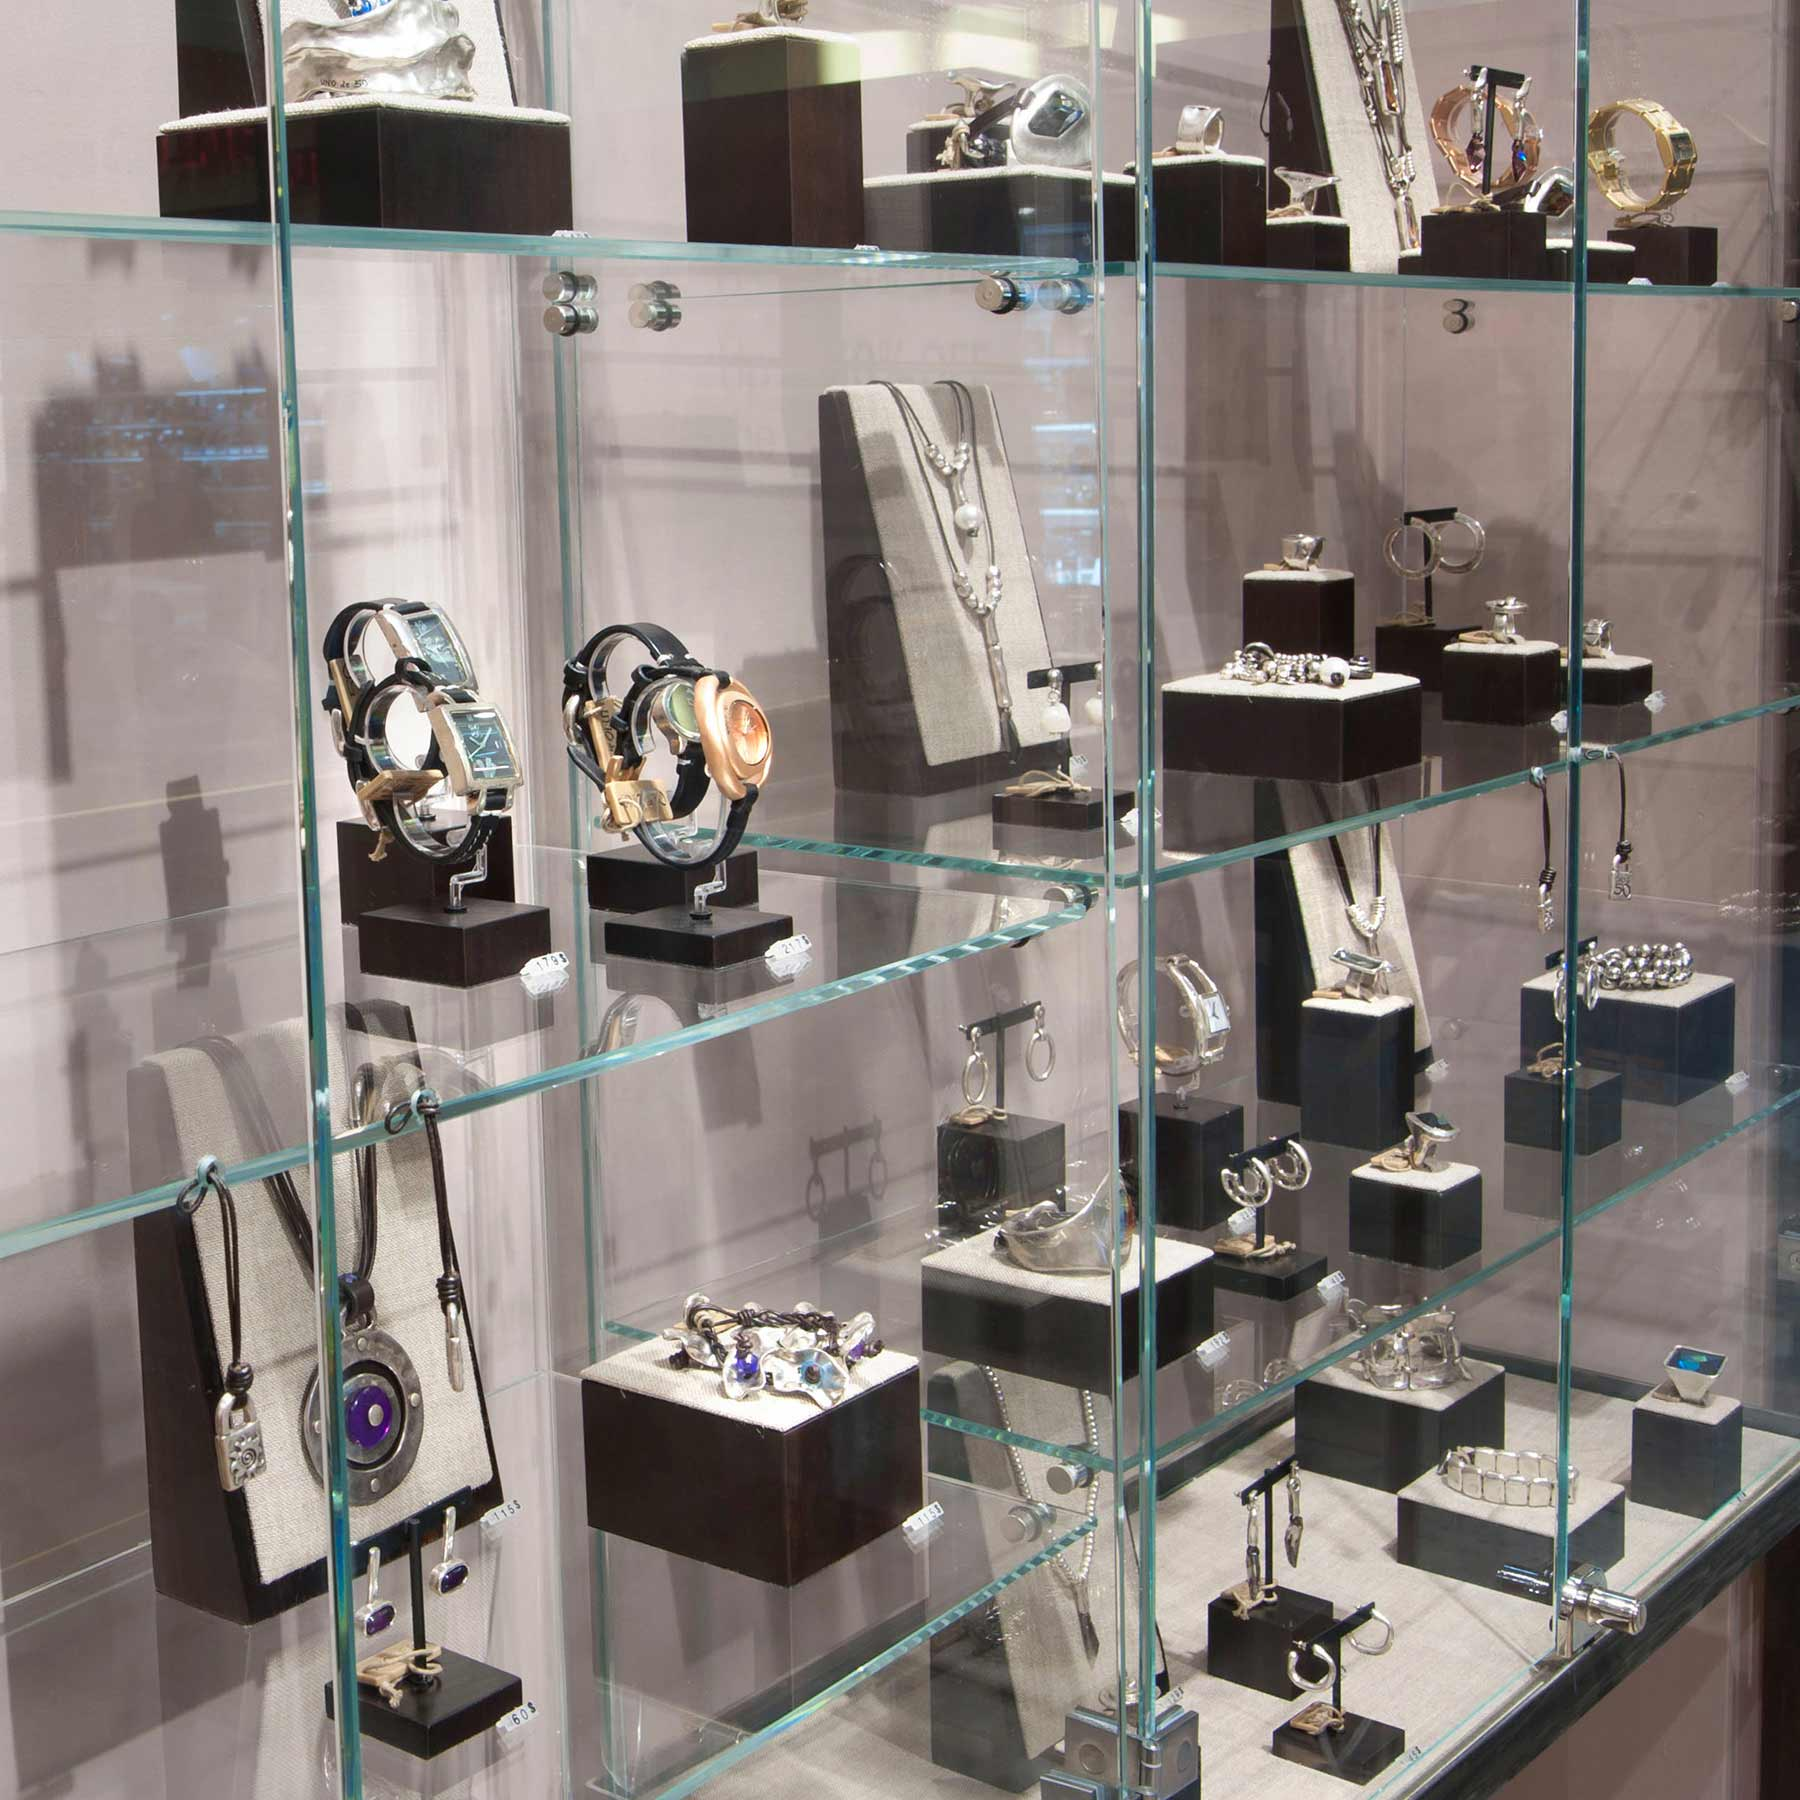 Glass shelves with black & white stands and holders for different types of jewelry, seen at jewelry displays across Miami.